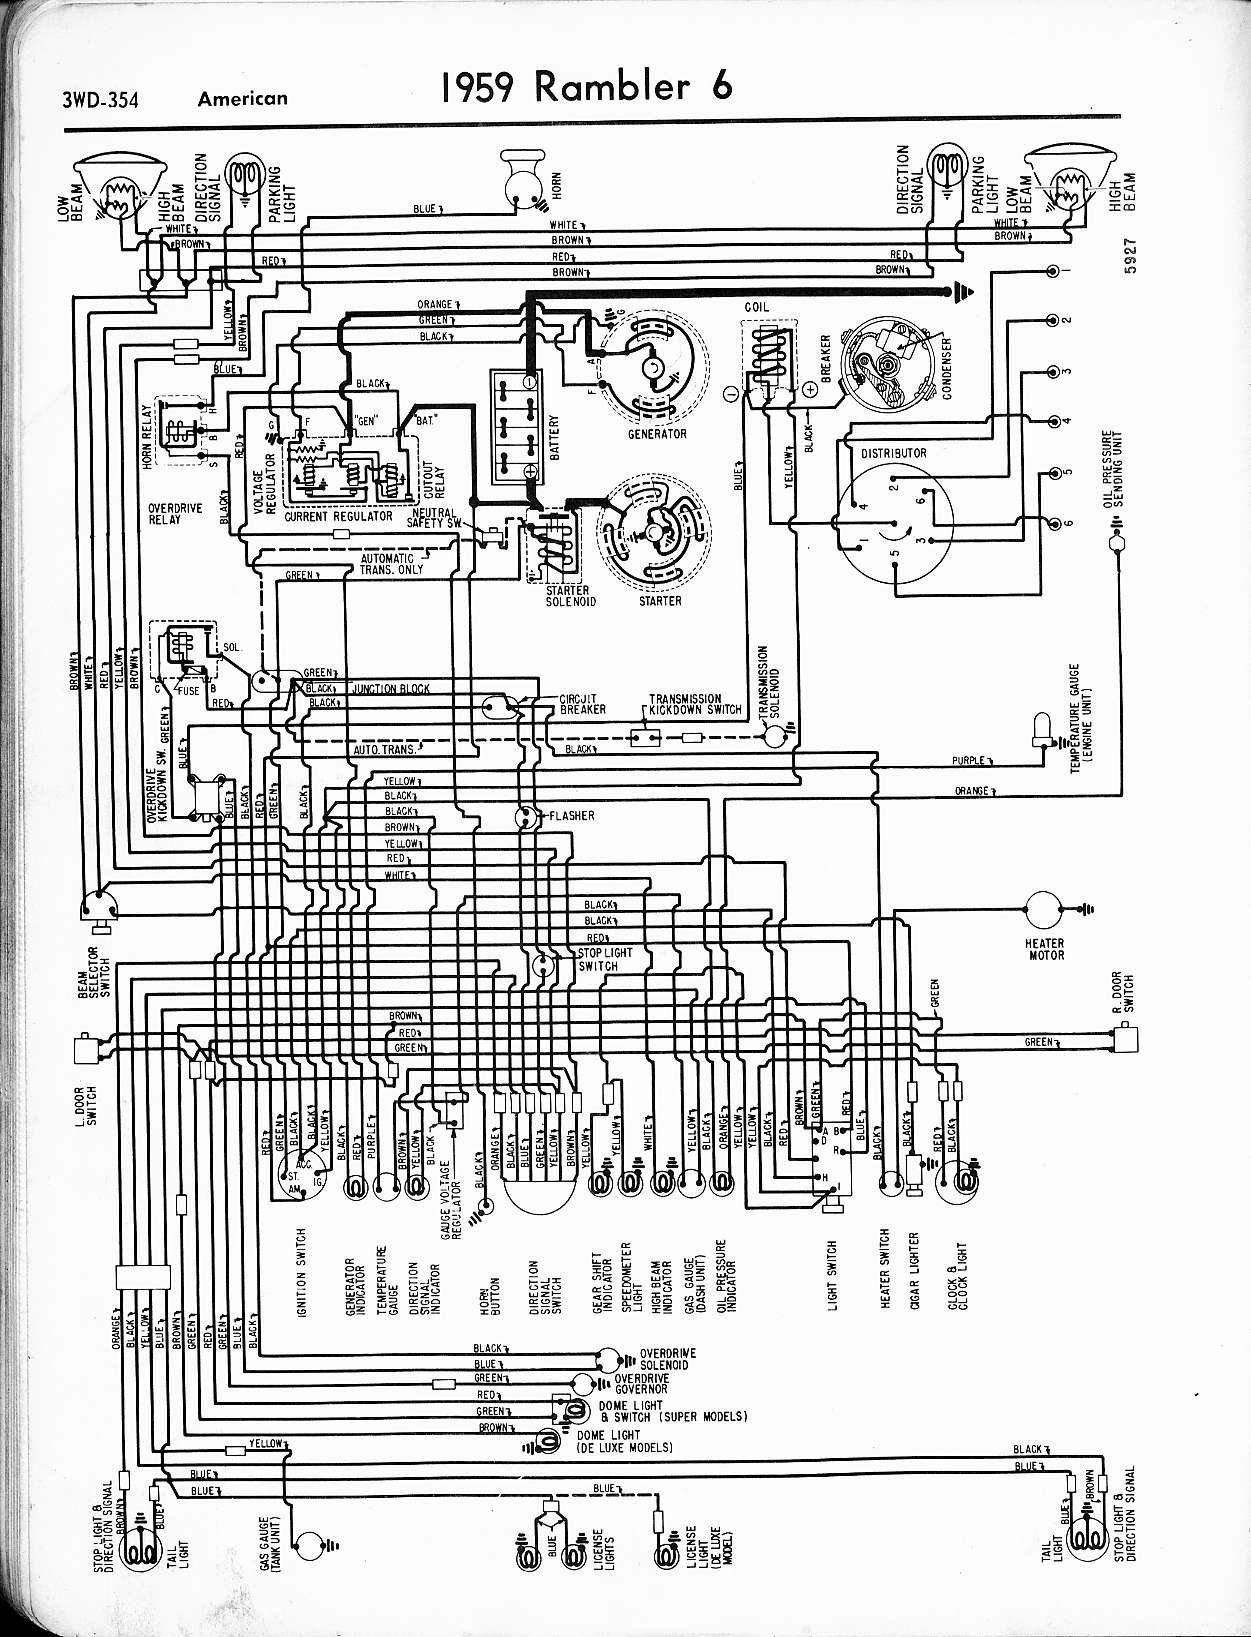 rambler wiring diagrams the old car manual project Voltage Regulator Troubleshooting 1959 rambler 6 american